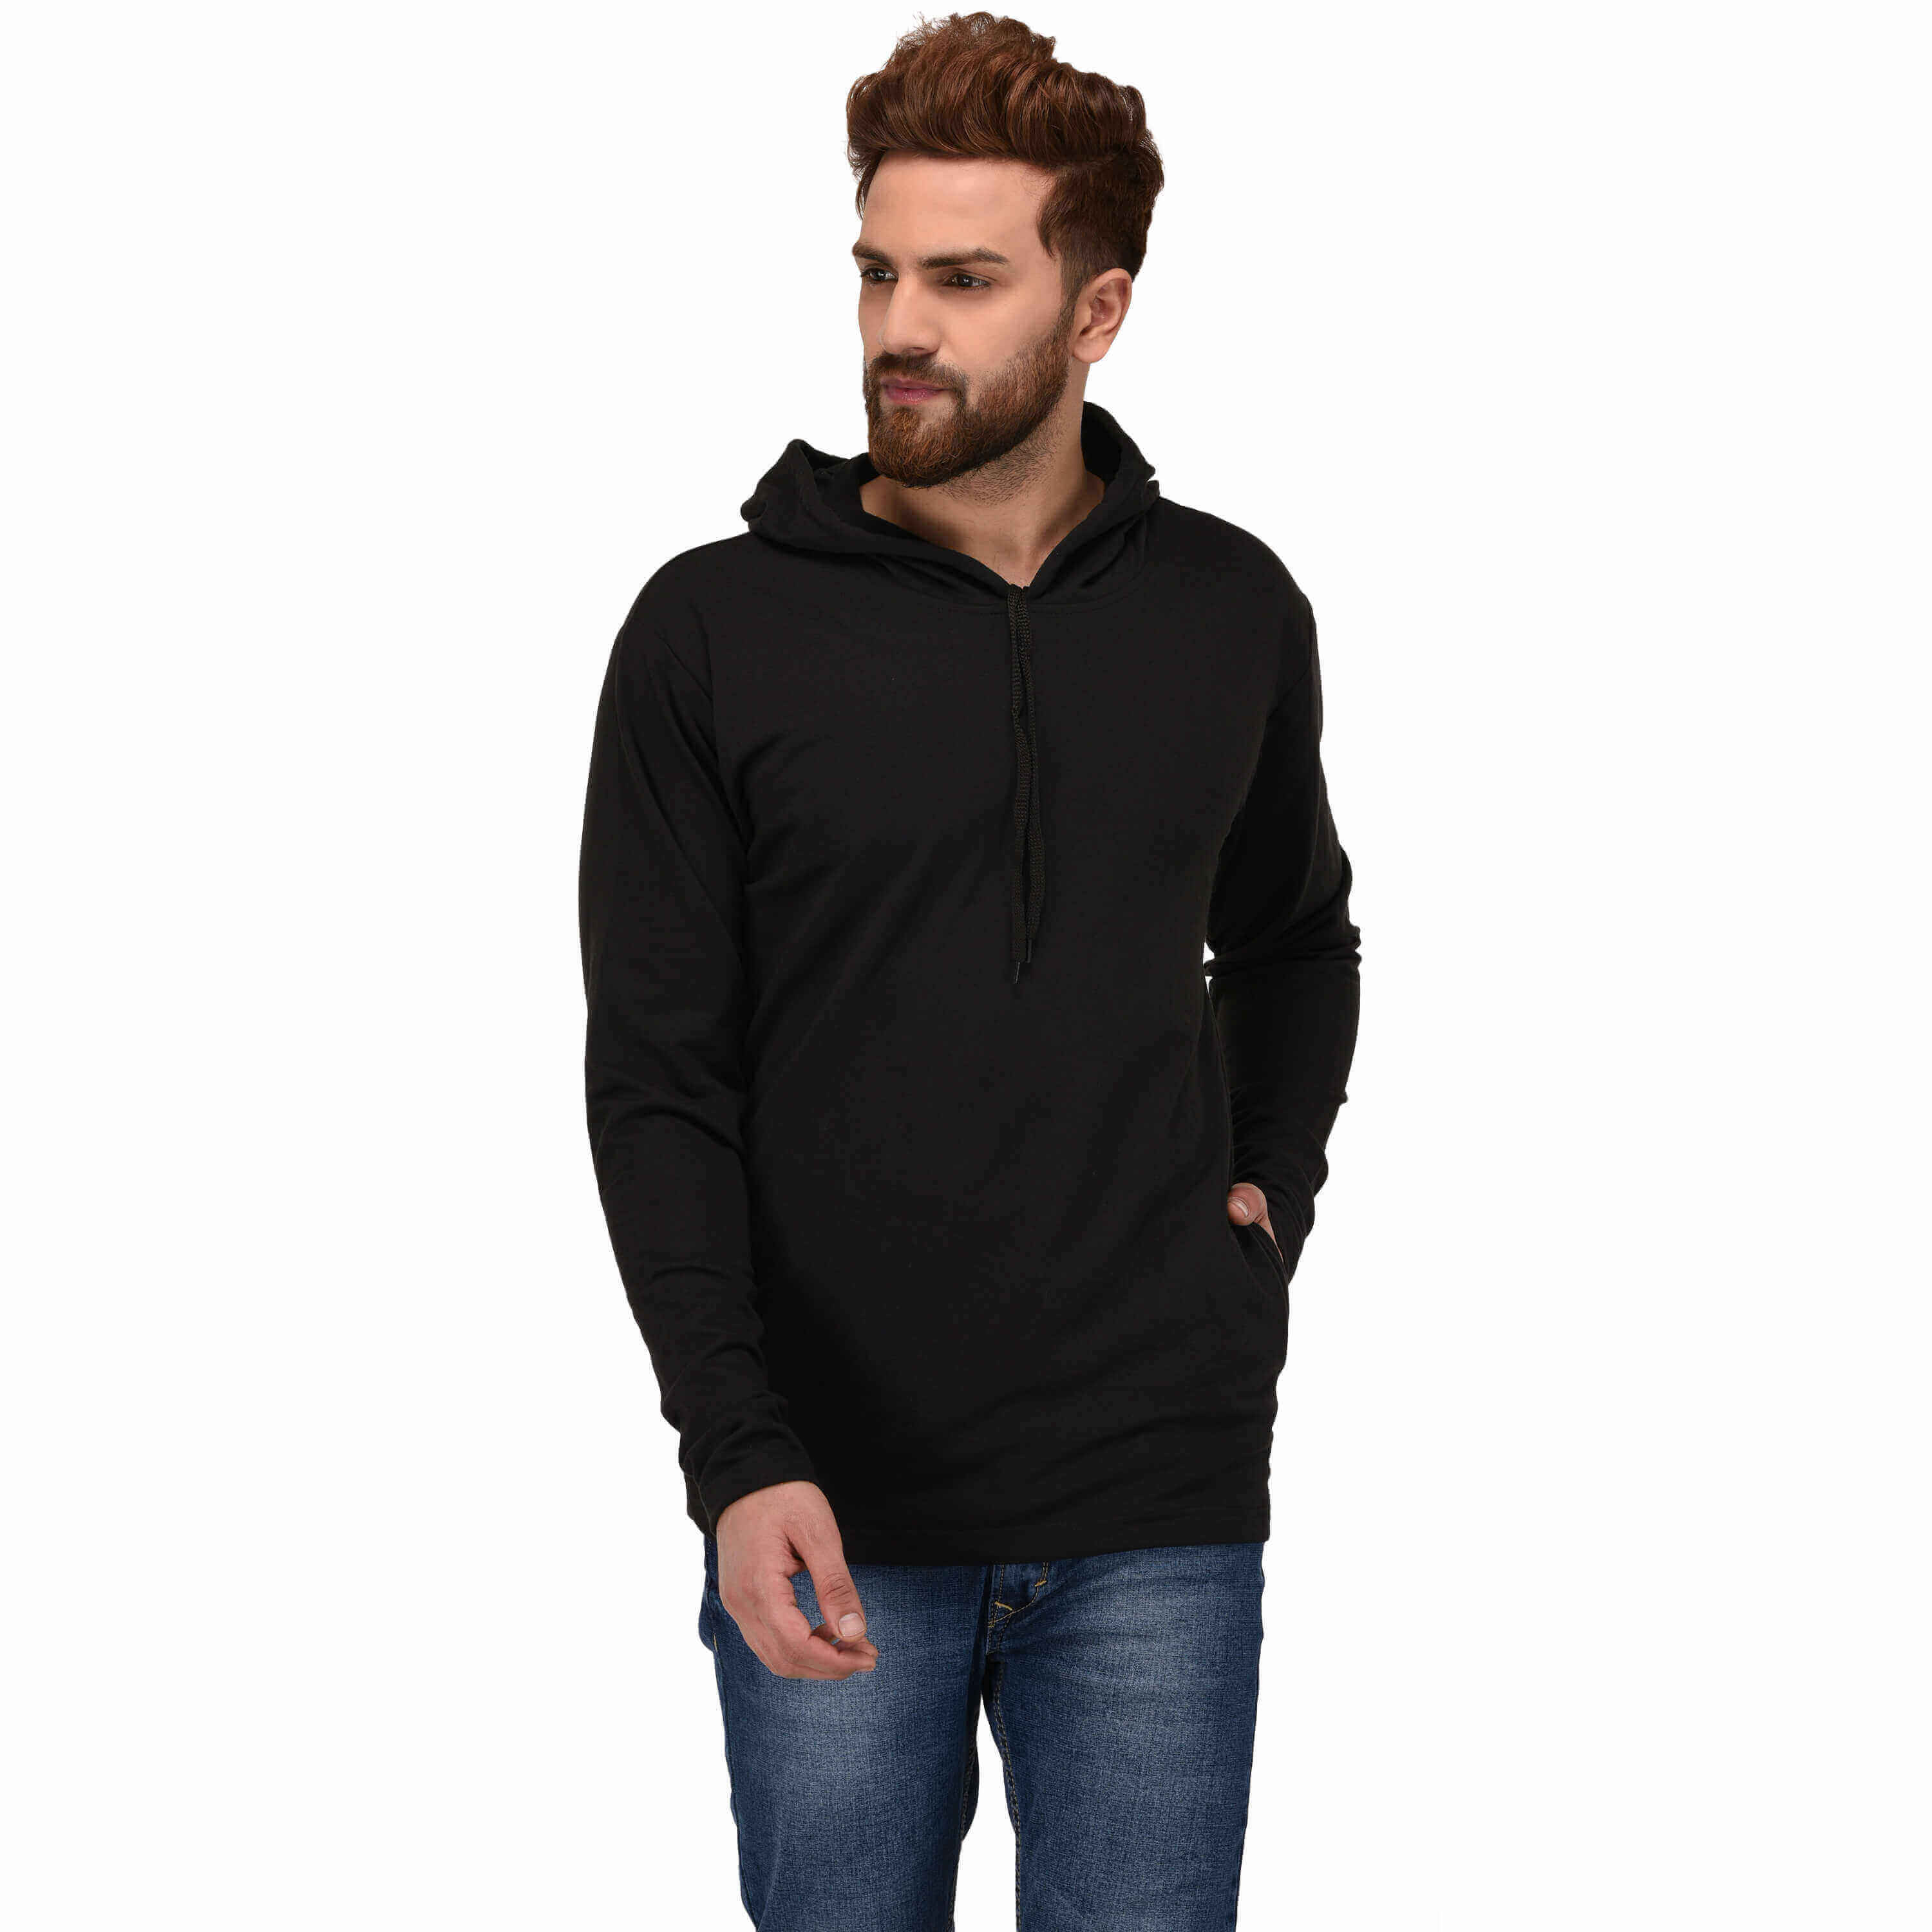 Sports Hoodies Manufacturers in Thailand